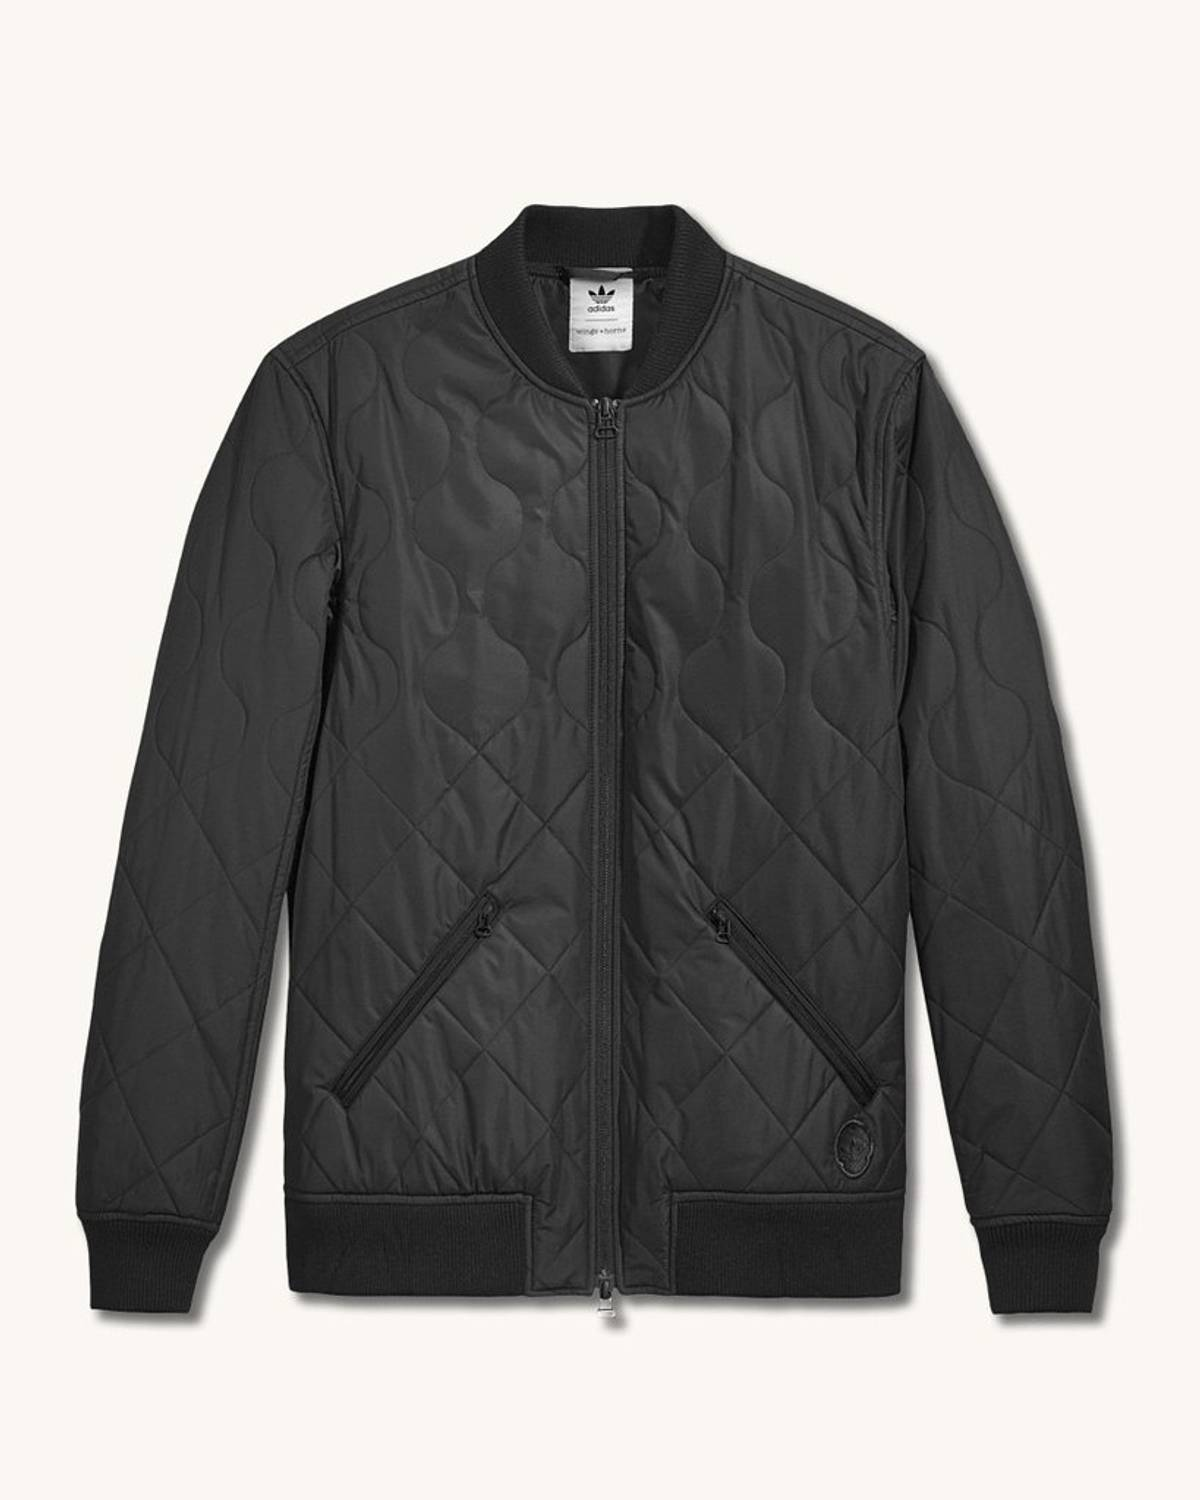 23bbfd3a3 Adidas × Wings + Horns Primaloft Insulated Bomber Size M $337